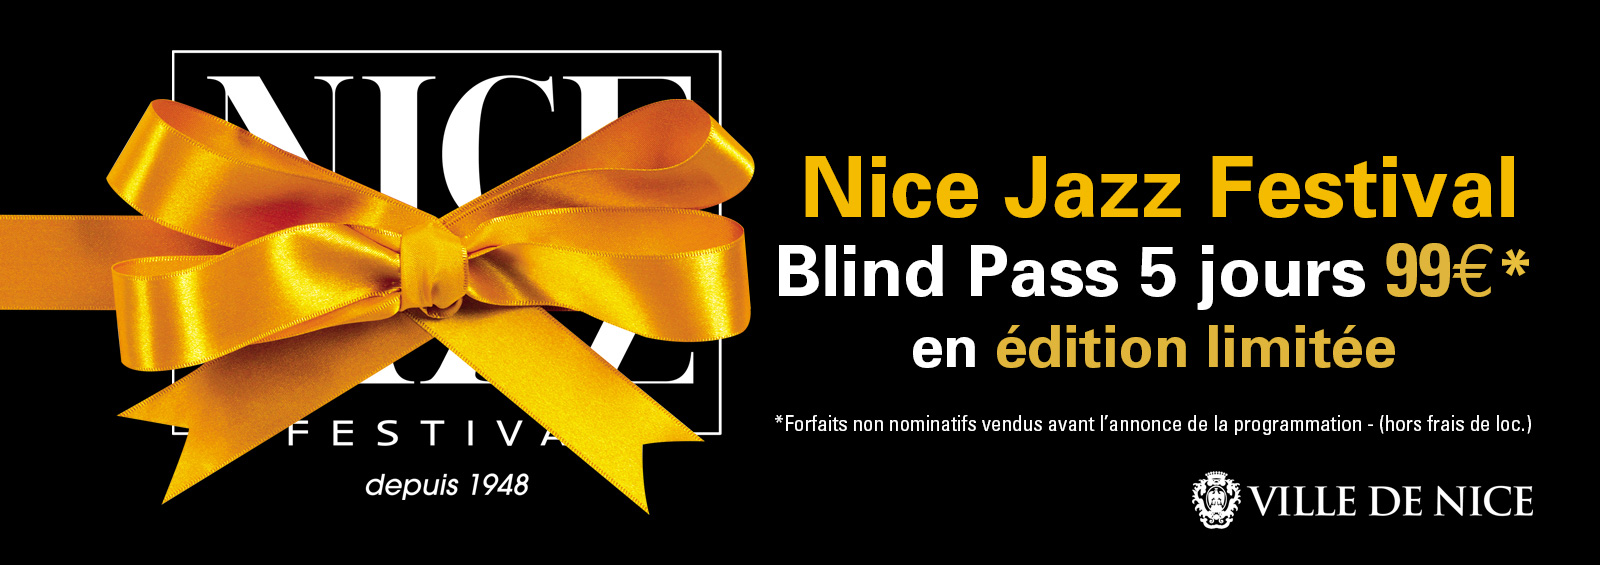 Blind pass Nice Jazz Festival 2017